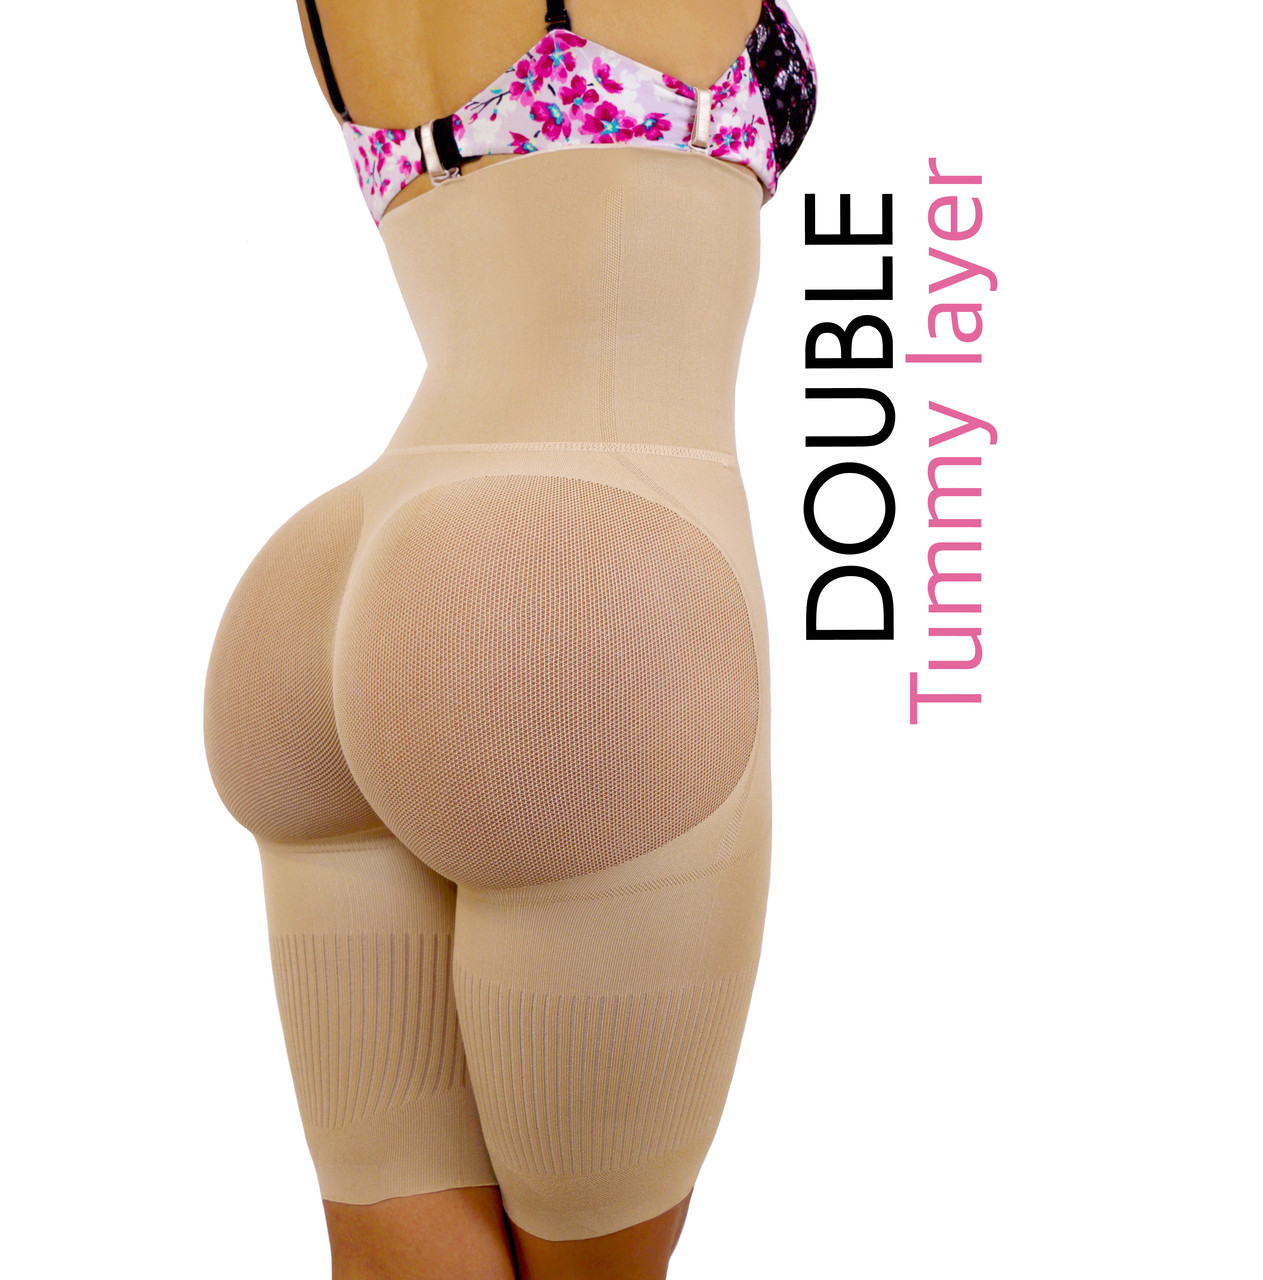 c9758404490b2 Happy Butt N°7 Double Tummy Layer - YAHAIRA INC